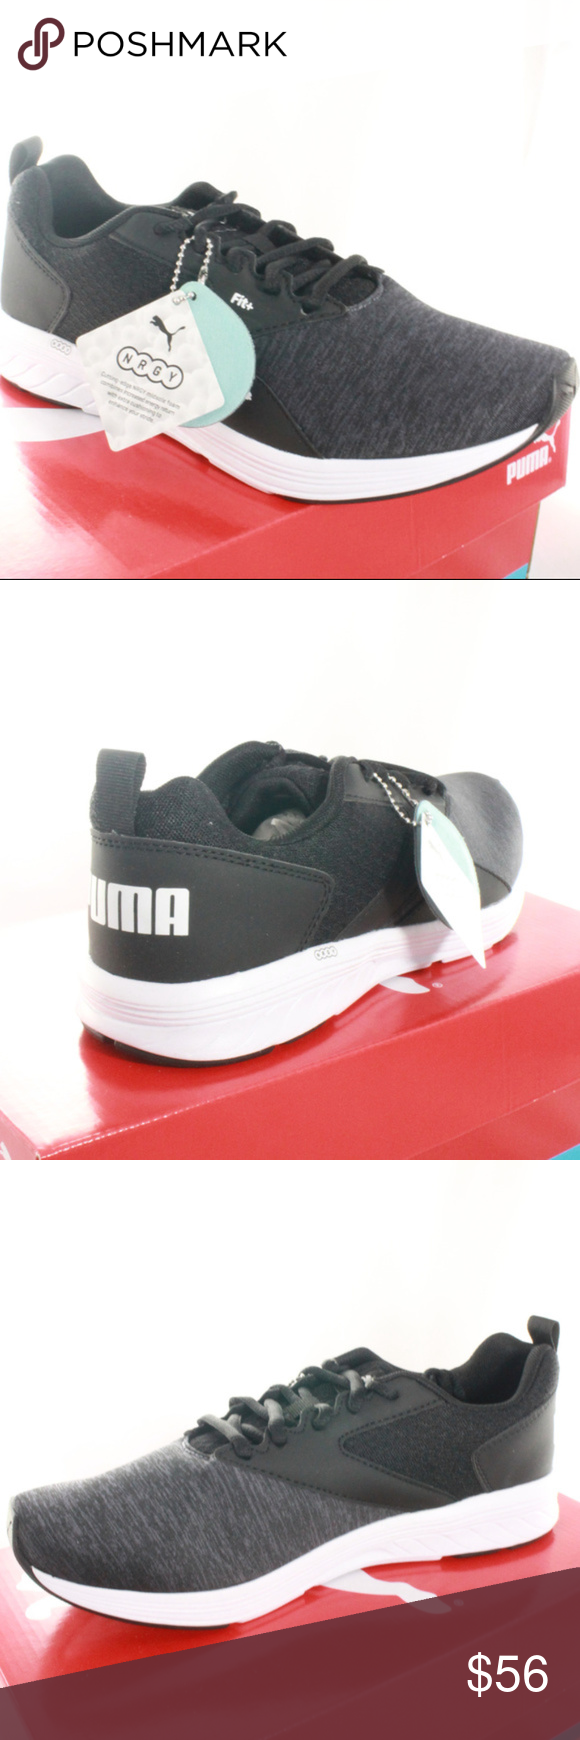 7977031a4c0 CLEARANCE PUMA NRGY Comet Blck Unisex Running Shoe All new running shoes